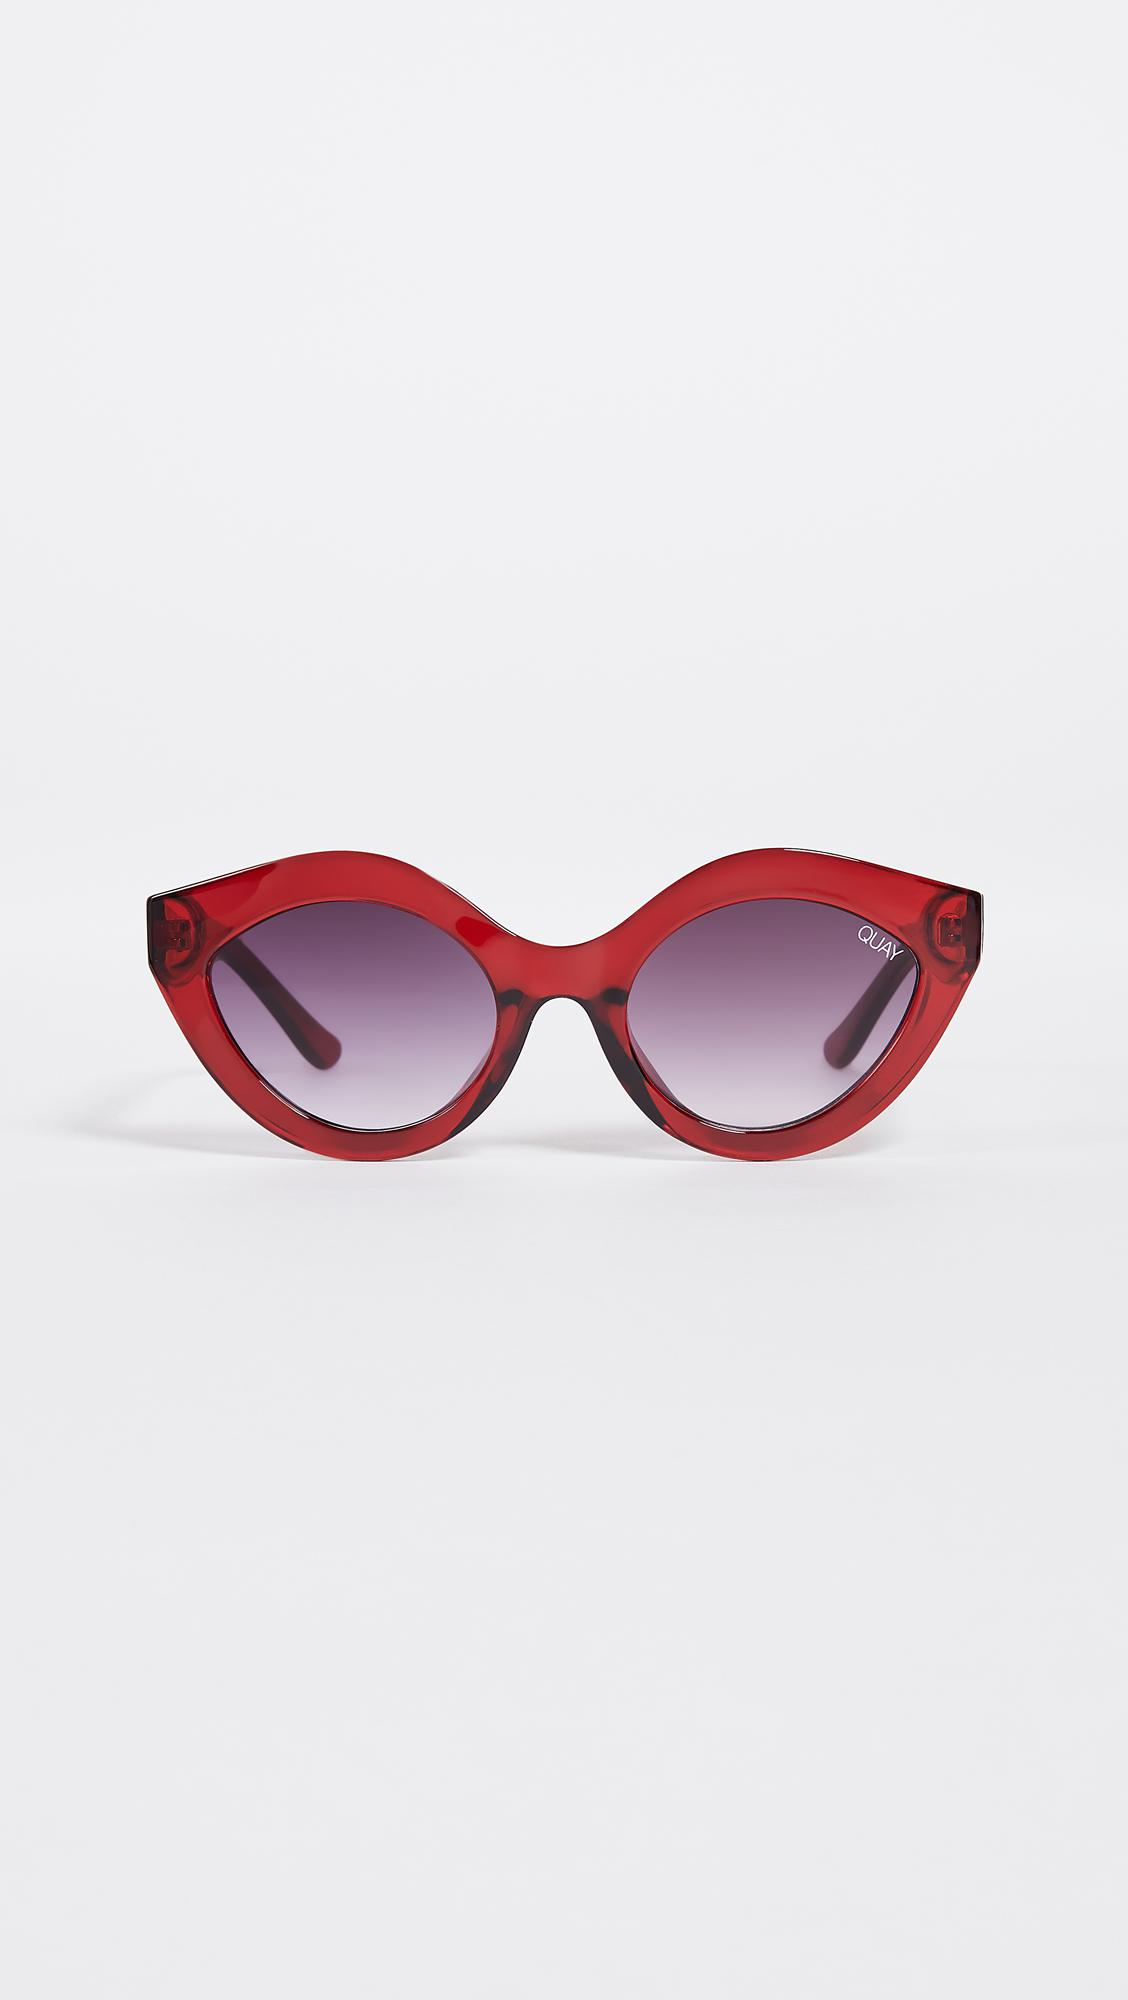 b7664613b8b Lyst quay goodnight kiss sunglasses in red jpg 1128x2000 Quay philippines  elle shades